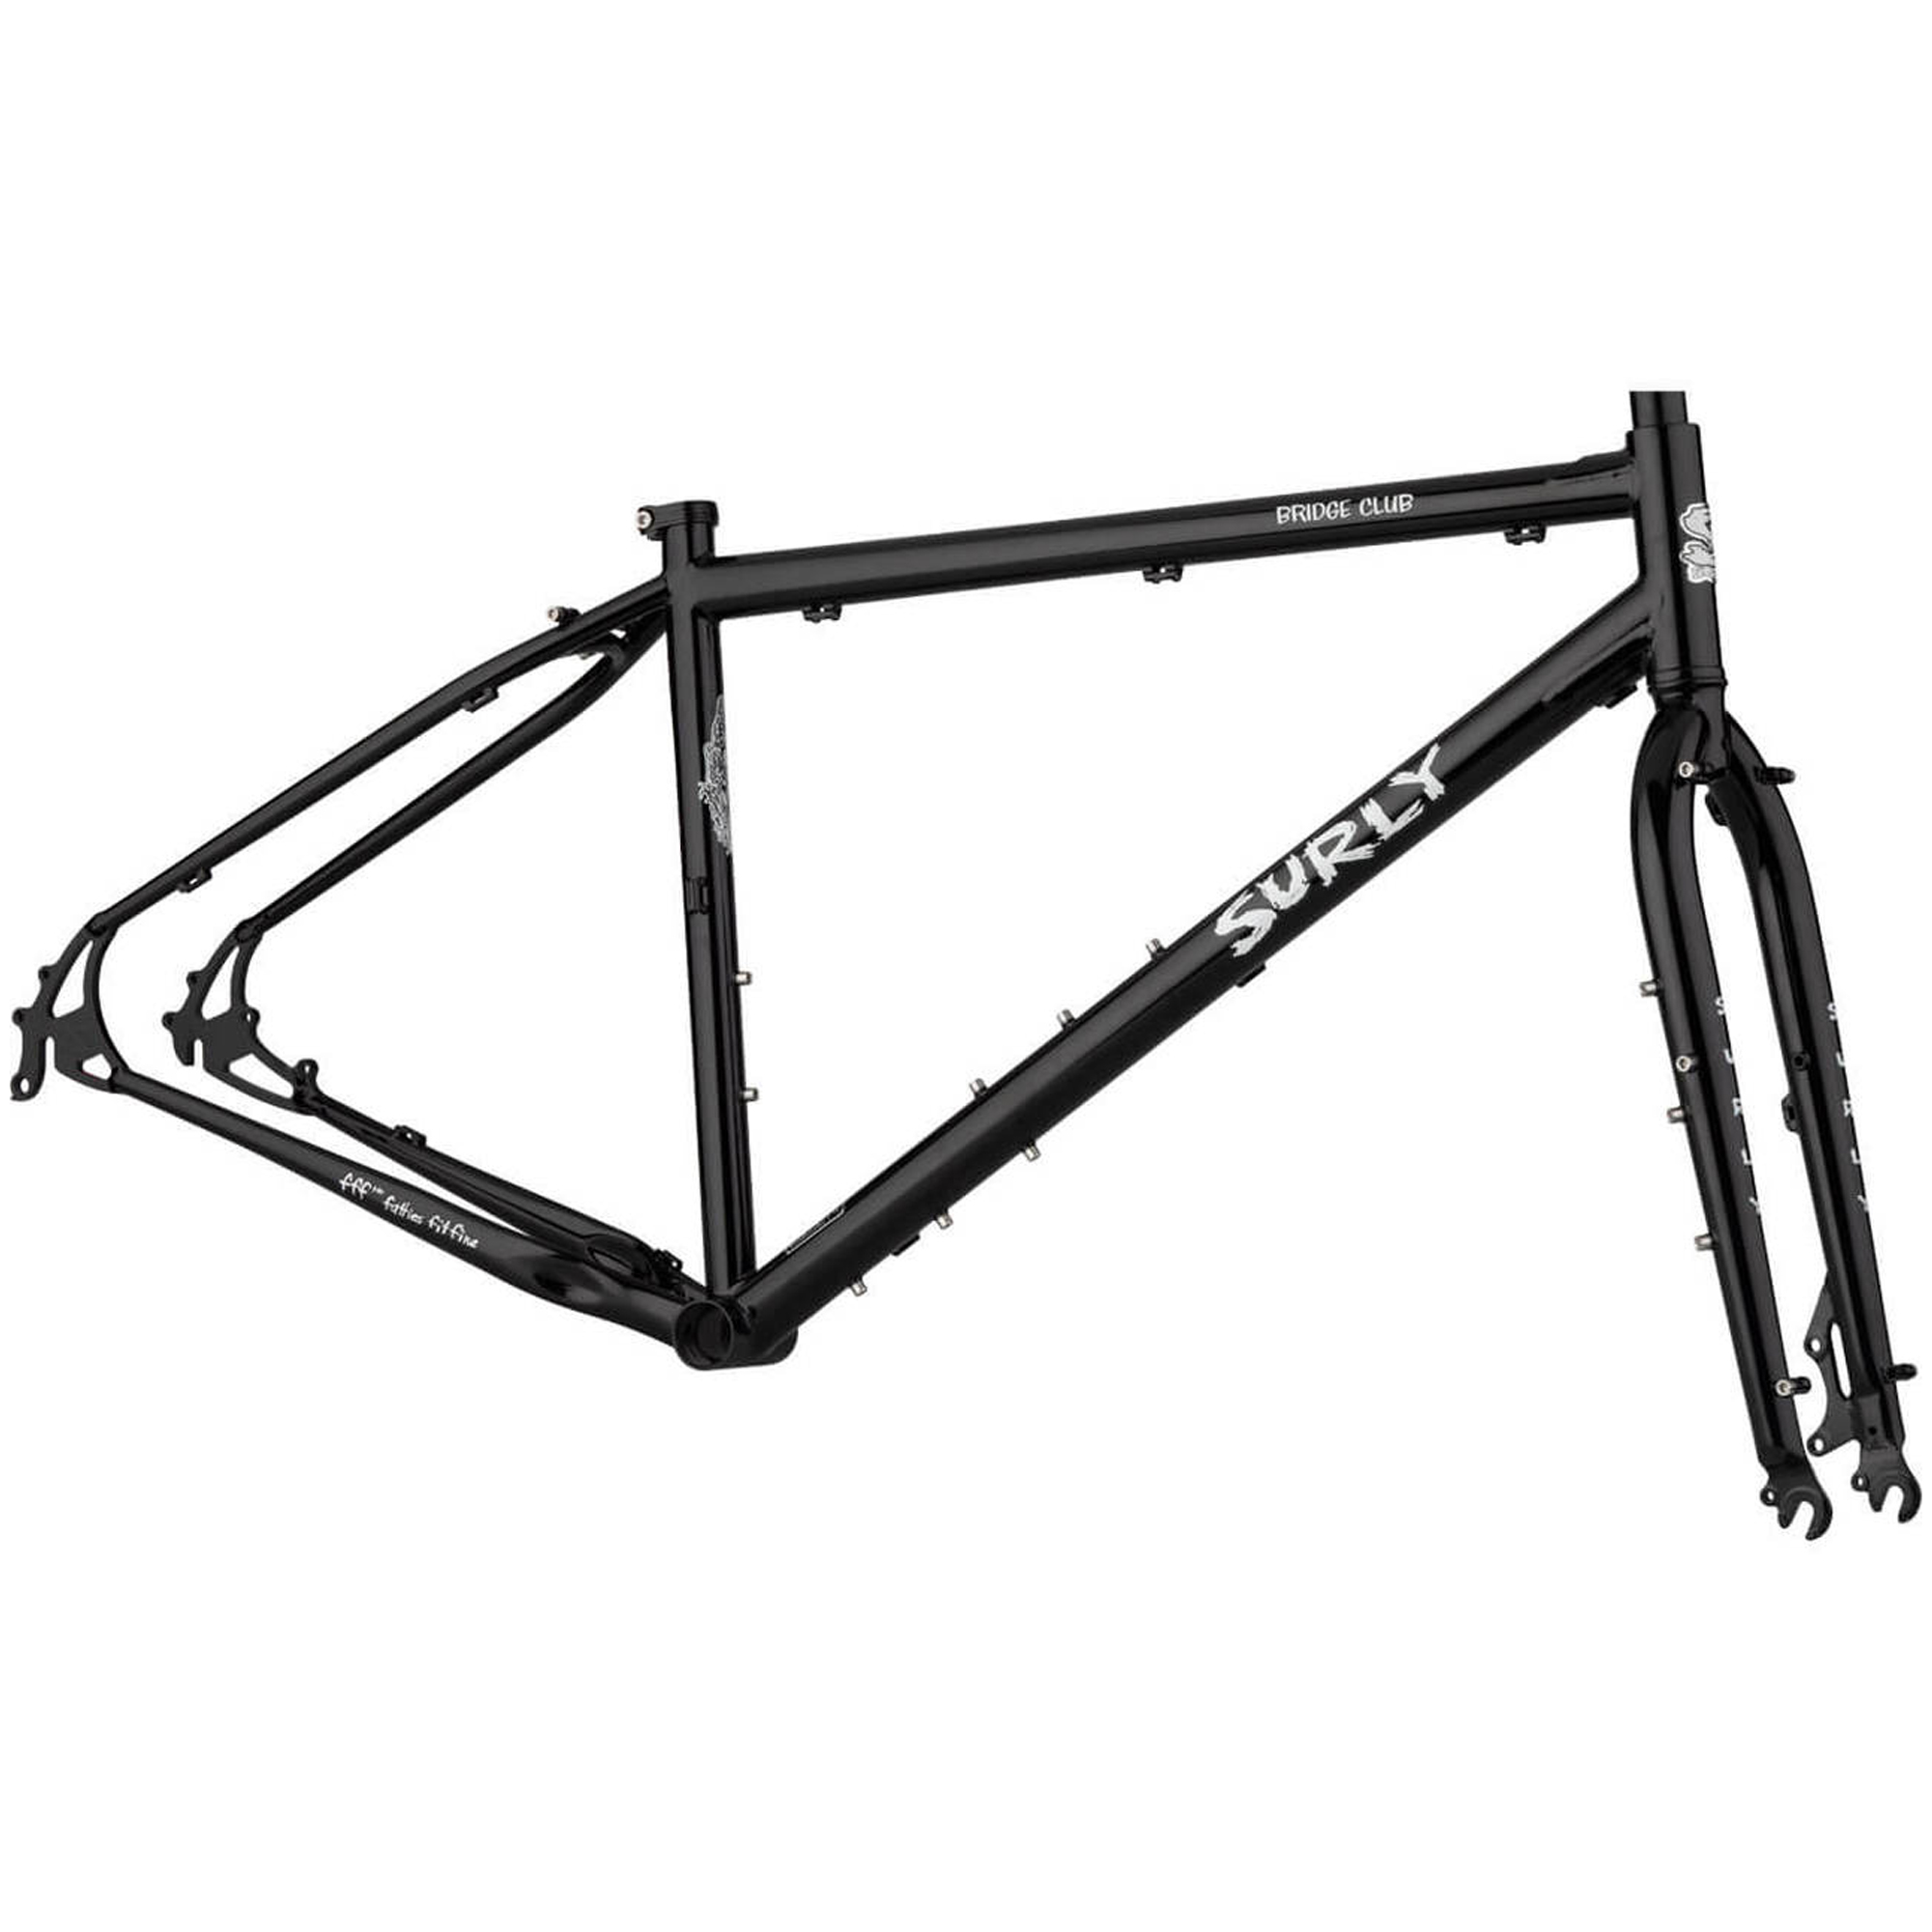 surly bicycle frame in black